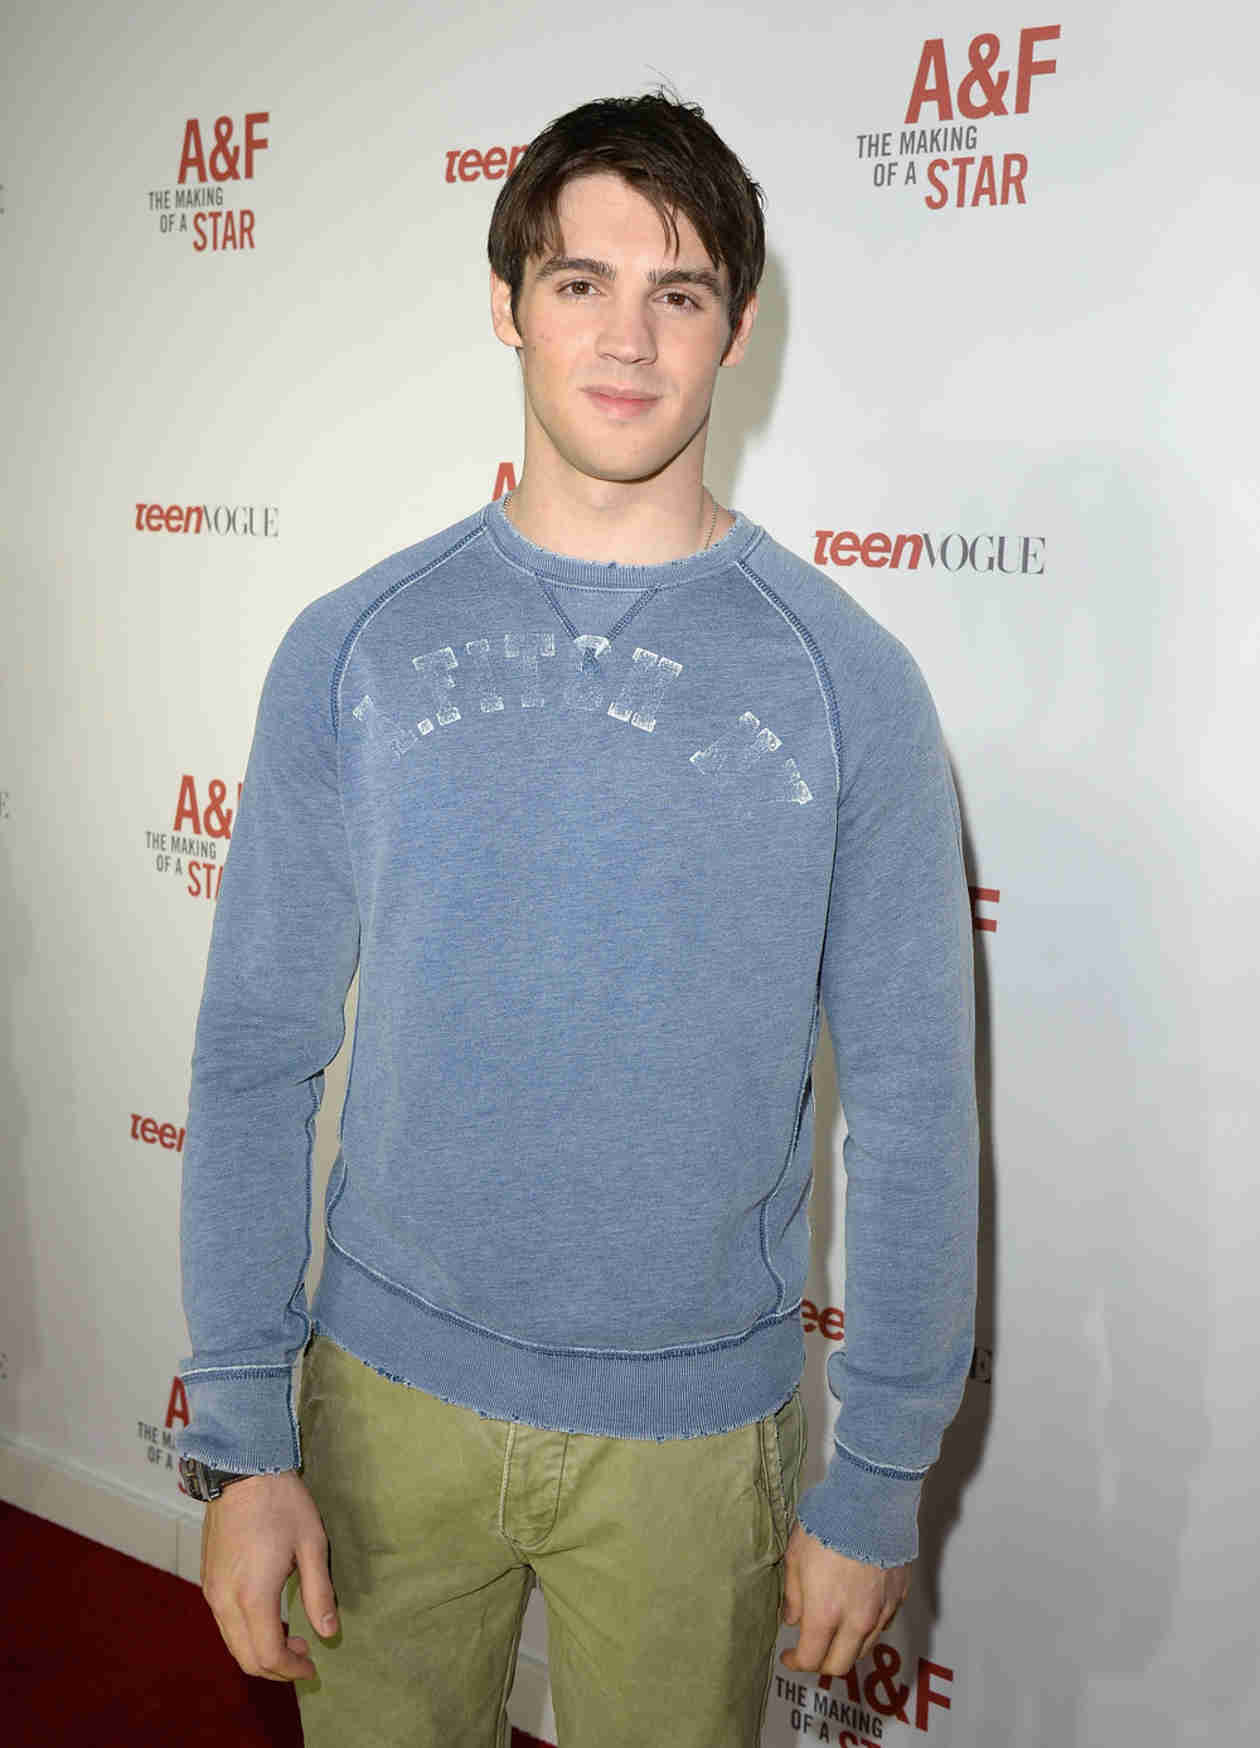 Vampire Diaries Star Steven R. McQueen Gets Cozy With Former Bachelor Contestants (VIDEO)